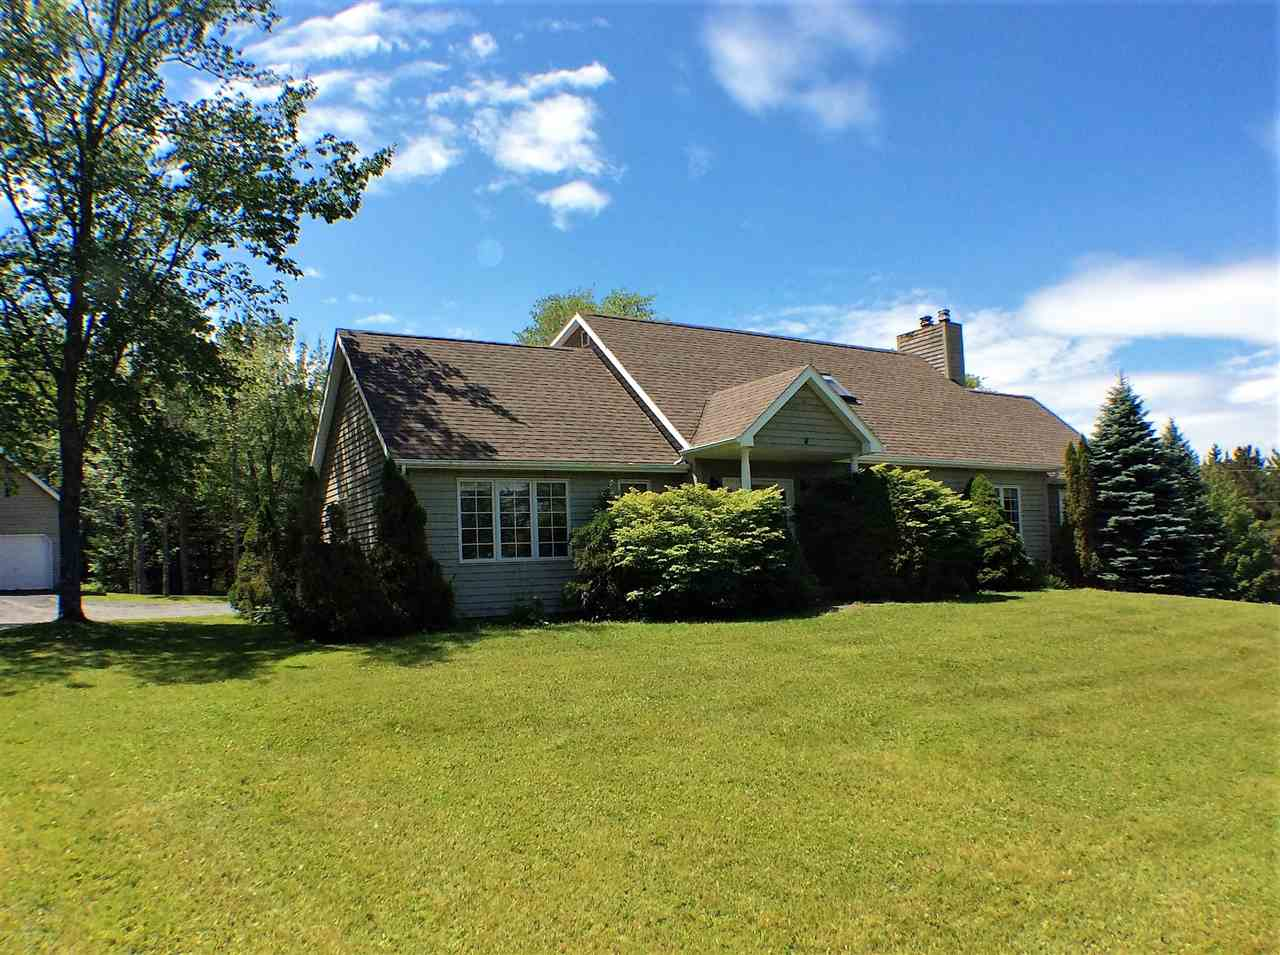 Main Photo: 8012 Pictou Landing Road in Little Harbour: 108-Rural Pictou County Residential for sale (Northern Region)  : MLS® # 201716756